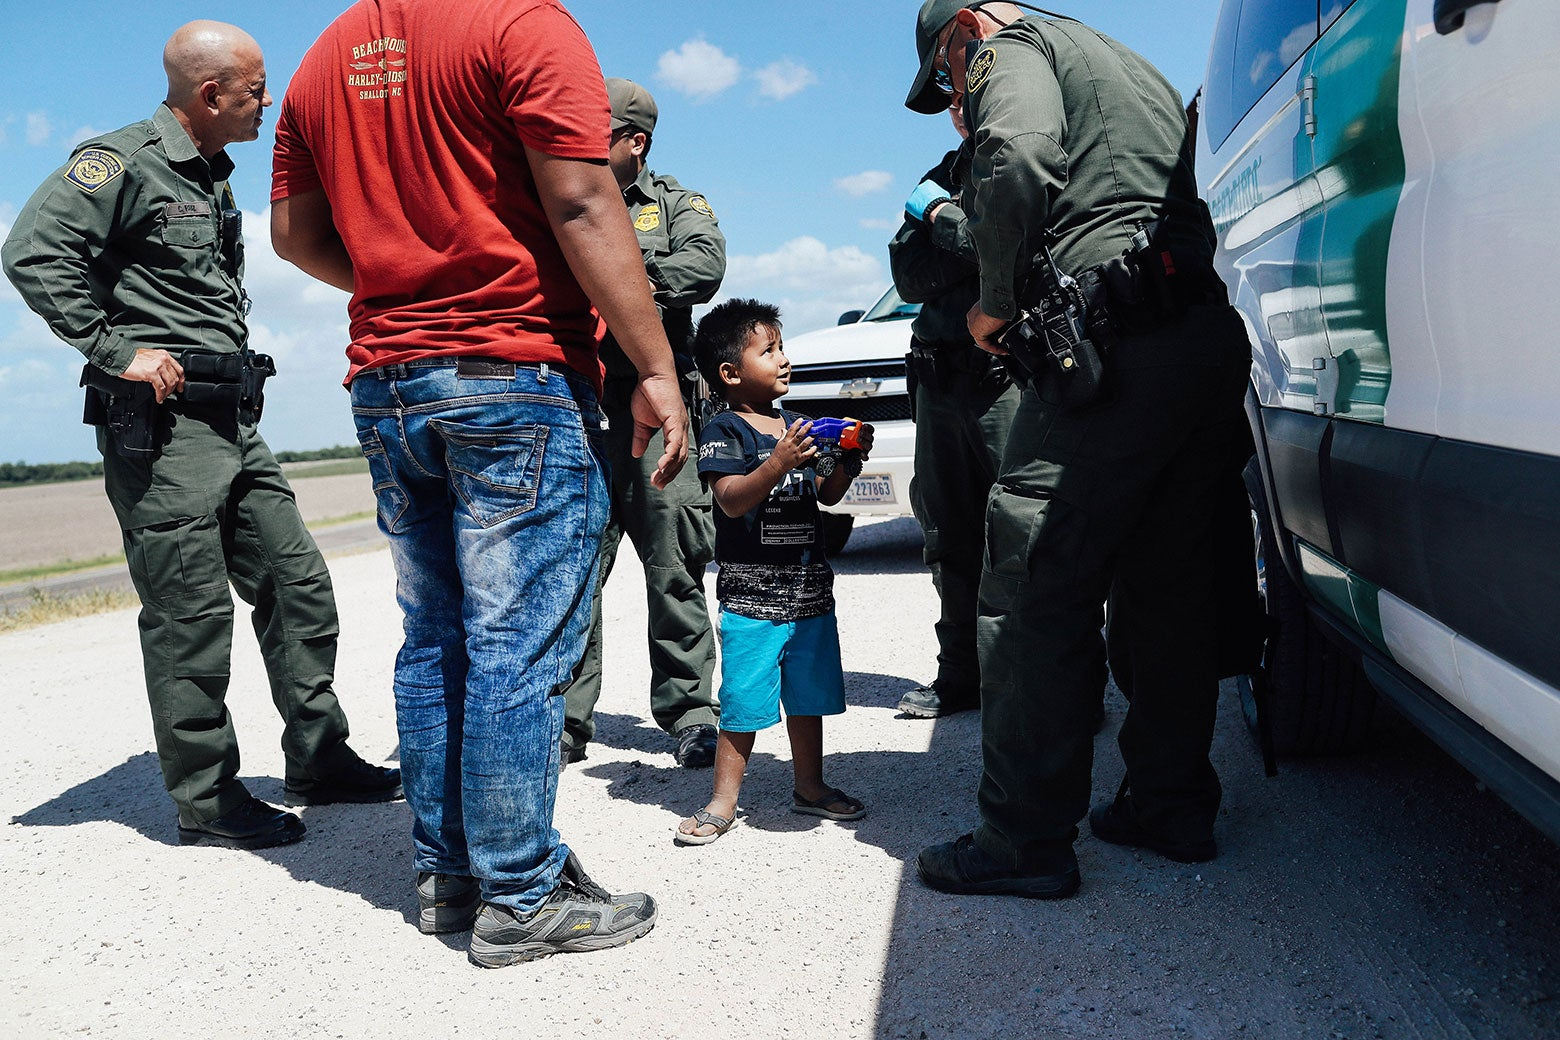 A boy and father from Honduras are taken into custody by U.S. Border Patrol agents near the U.S.–Mexico border on Tuesday.